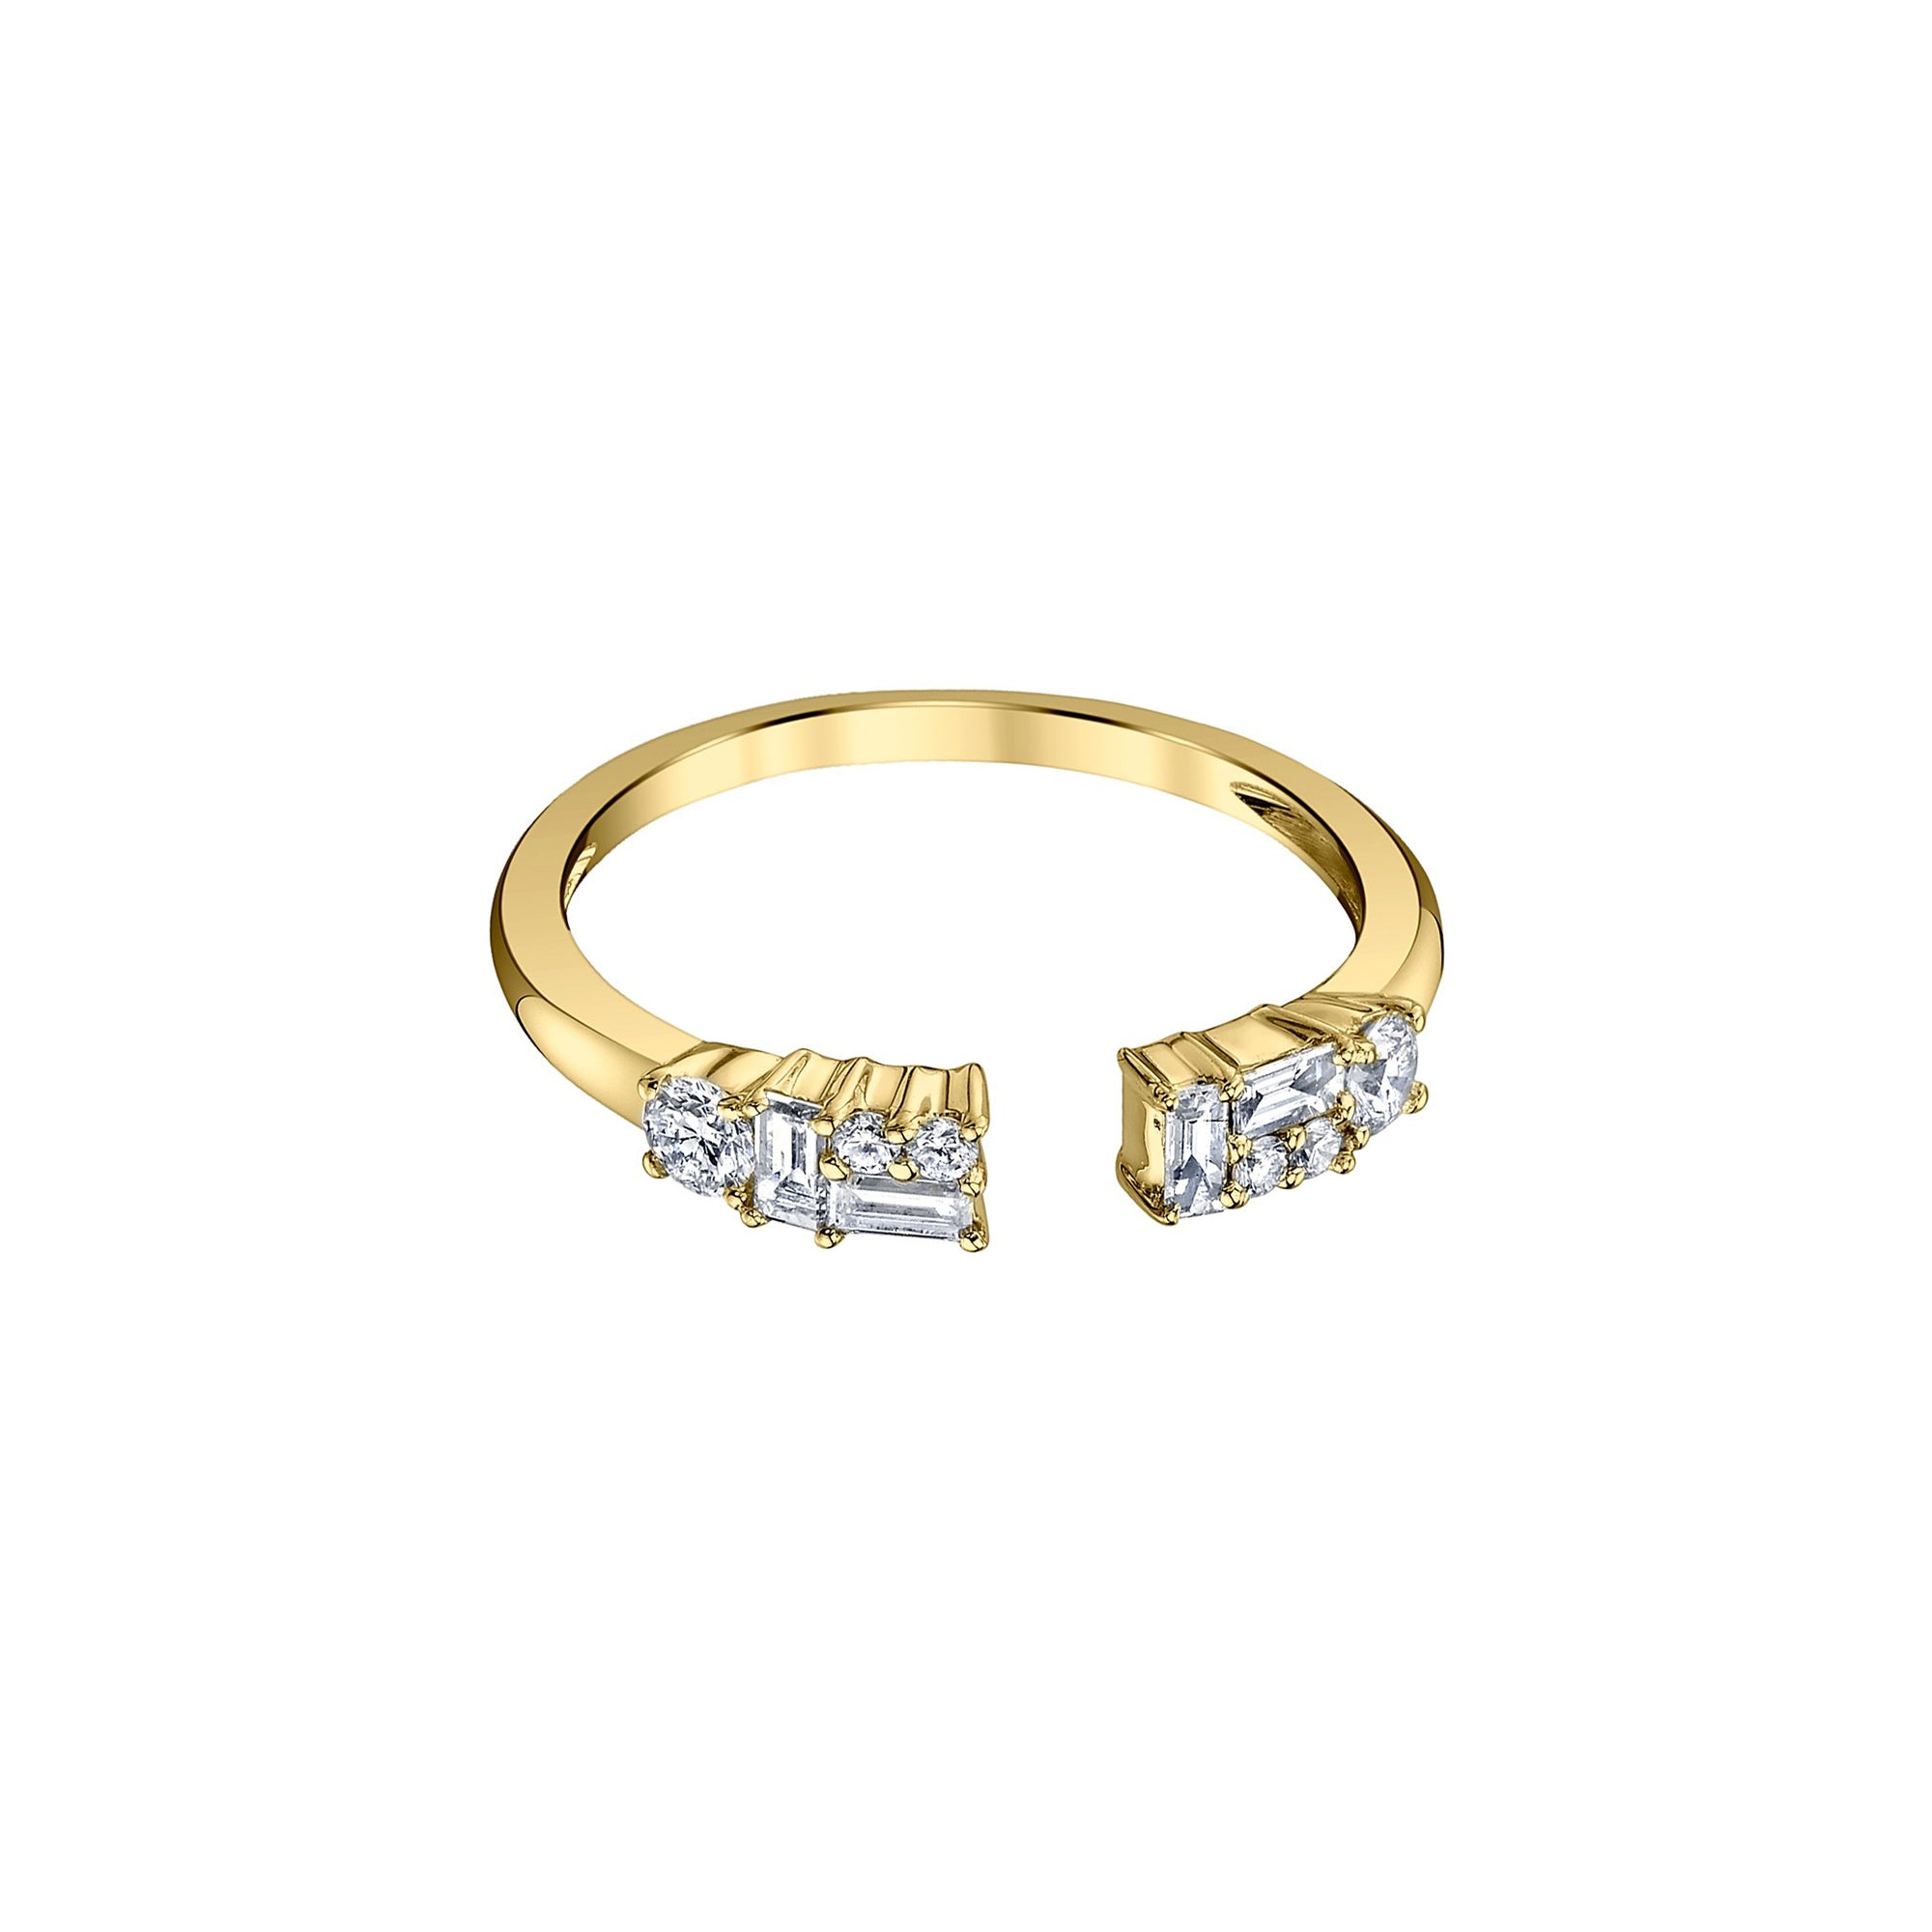 Gold & Mixed Cut Diamond Band by Borgioni for Broken English Jewelry